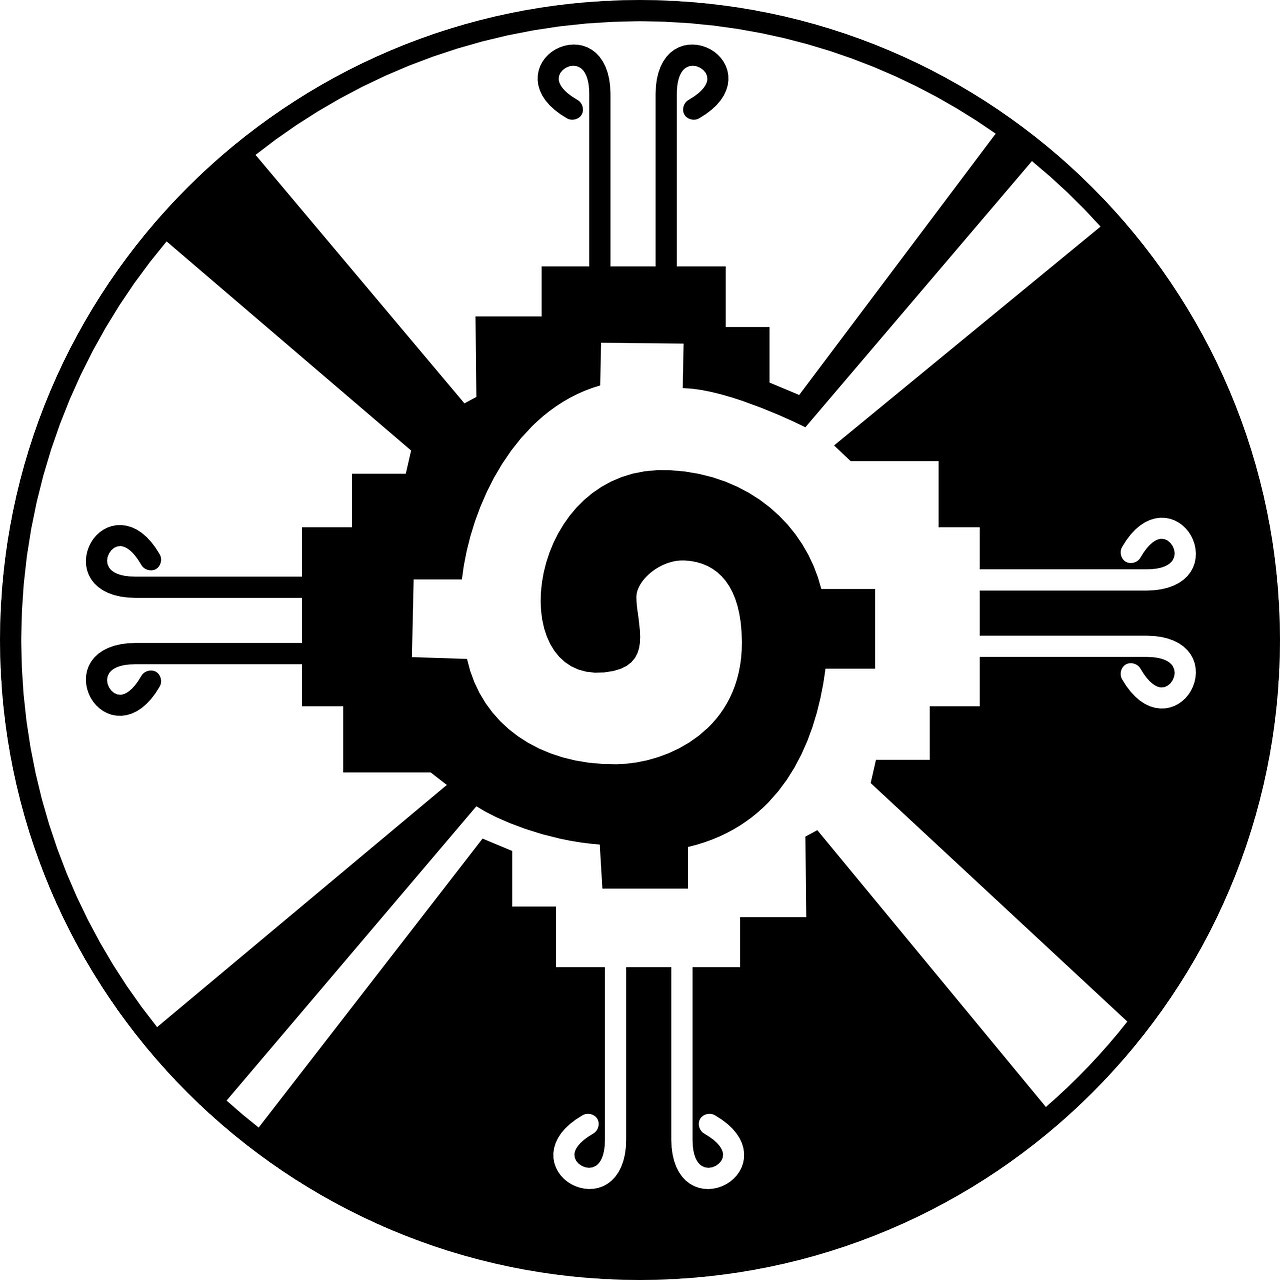 Aztec Tattoo Ideas For Creation On Whats Your Sign